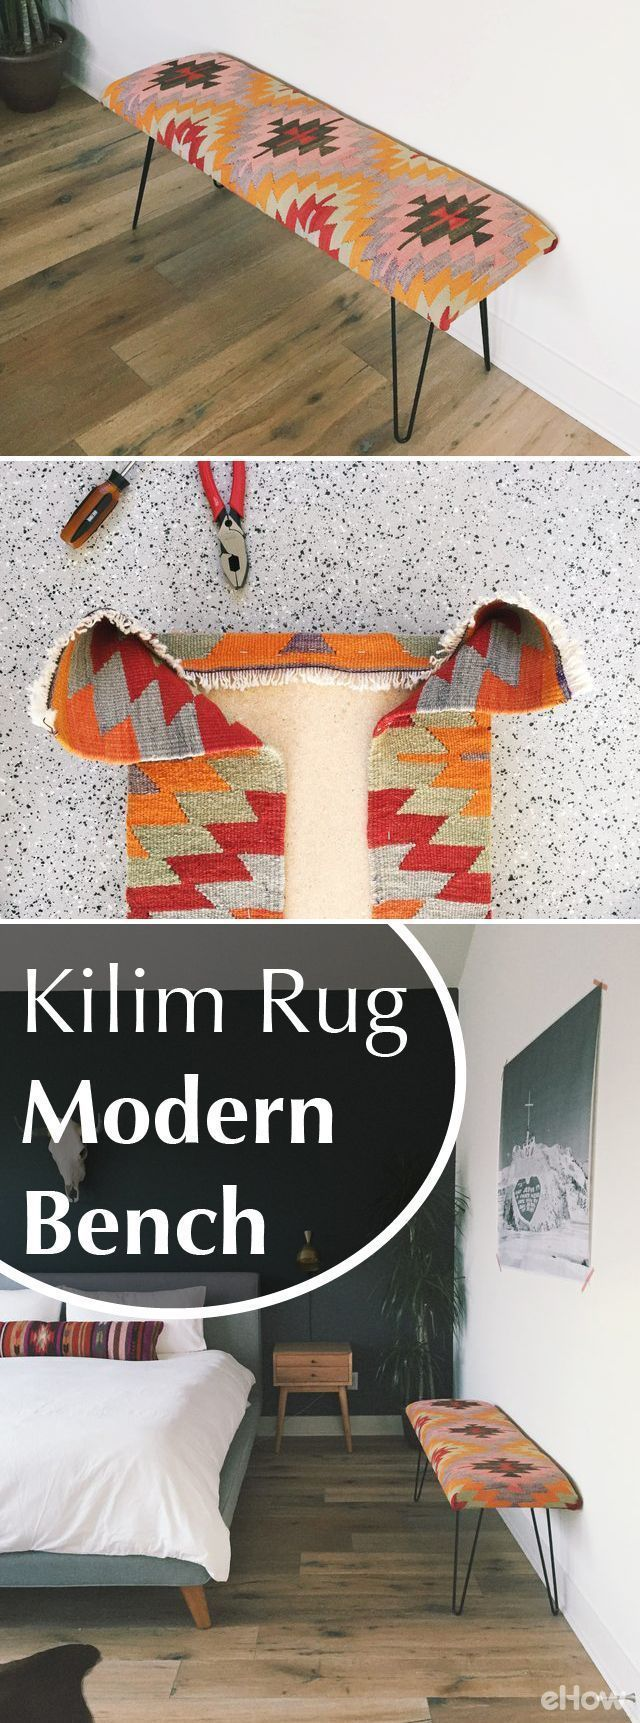 This is a quick and easy DIY for a mid-century modern-style bench using a cheery colored kilim rug! We love the way the vibrant colors of the fabric really brightened up our nearly neutral bedroom, making the bench the perfect statement piece. With less than $200 and a couple hours of your time, you can easily make one too! http://www.ehow.com/how_12343183_turn-kilim-rug-modern-bench.html?utm_source=pinterest.com&utm_medium=referral&utm_content=freestyle&utm_campaign=fanpage